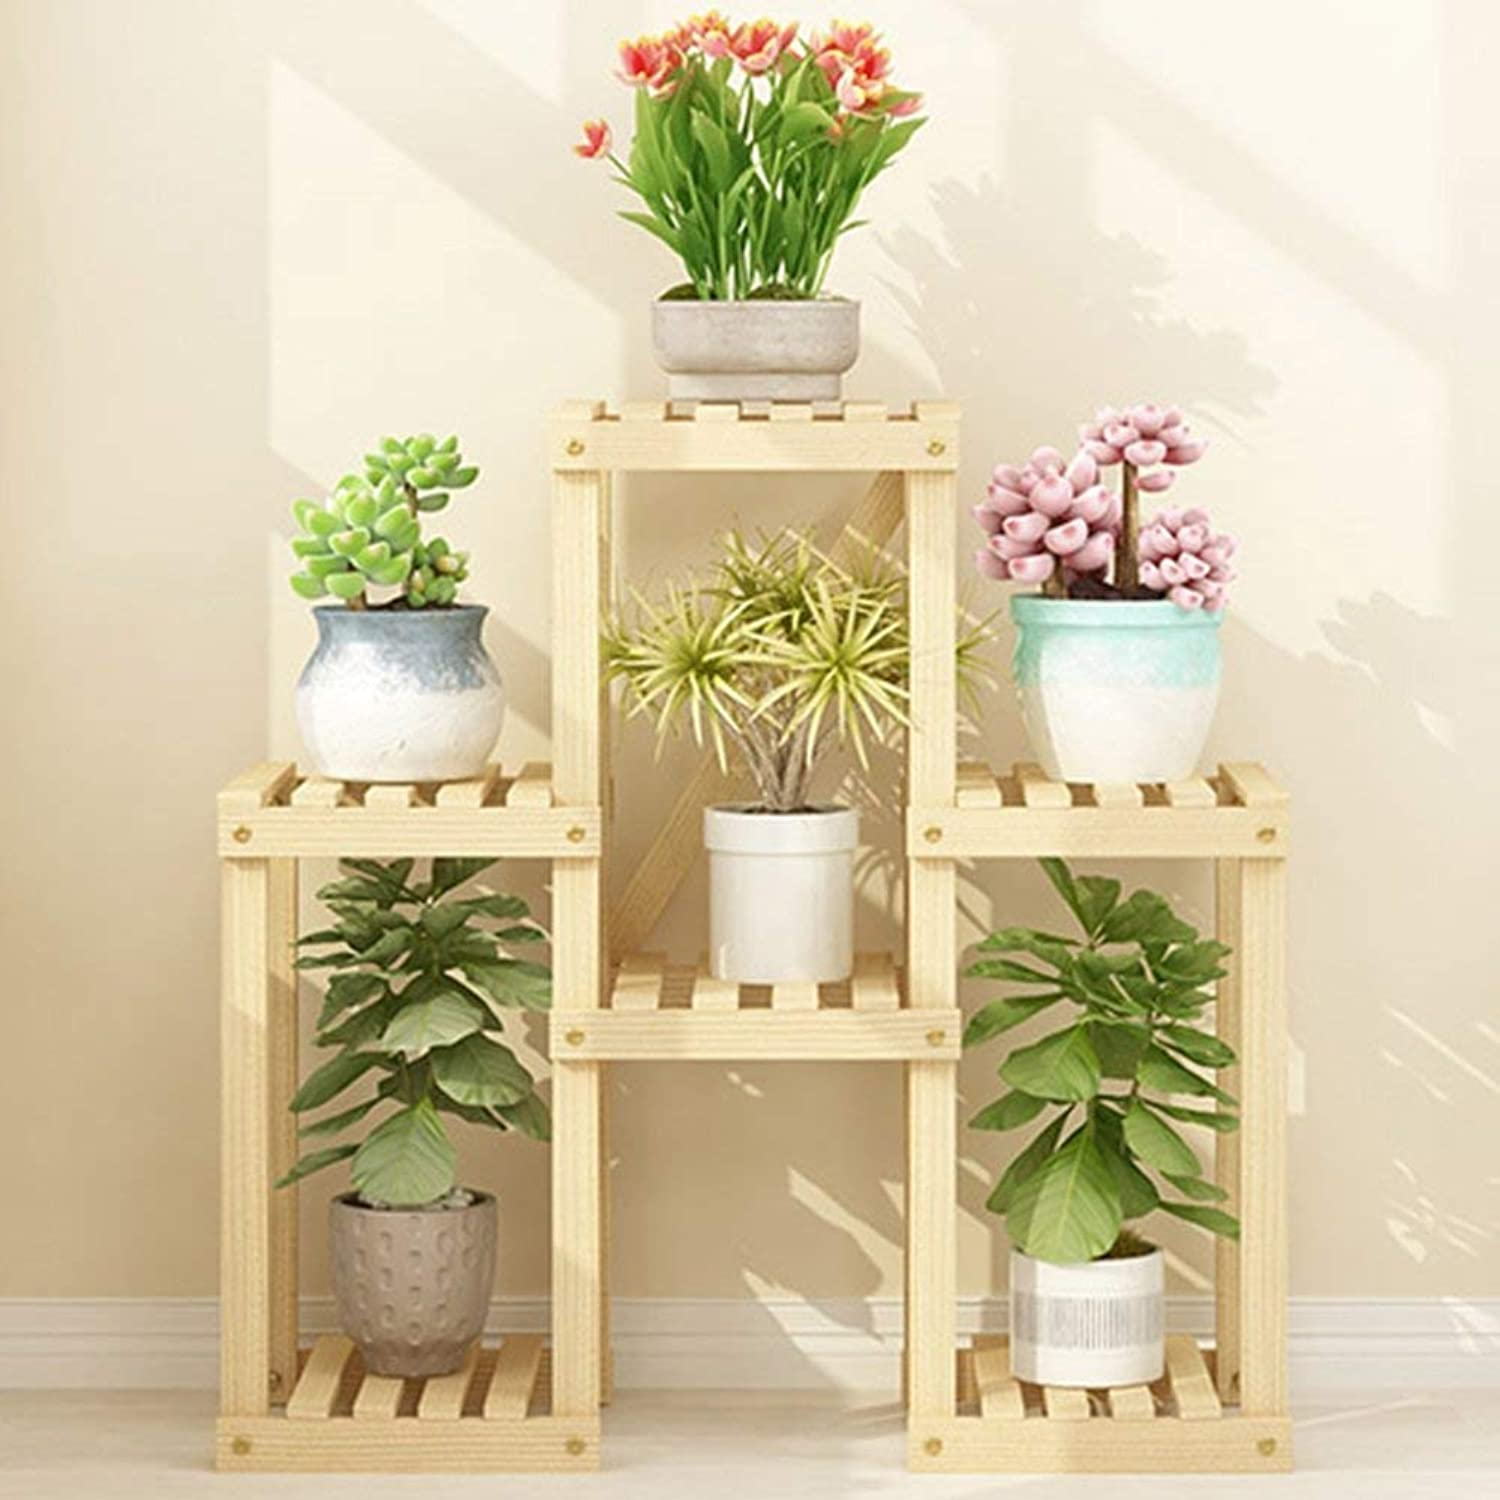 Shelves Organizer for Books Bookcase Bookshelf Ends Flower Stand Floor-Standing Wooden Multi-Layer Space Saving Plant Stand Indoor and Outdoor Shelf Balcony Living Room Patio Pot Rack Strong Sturdy,